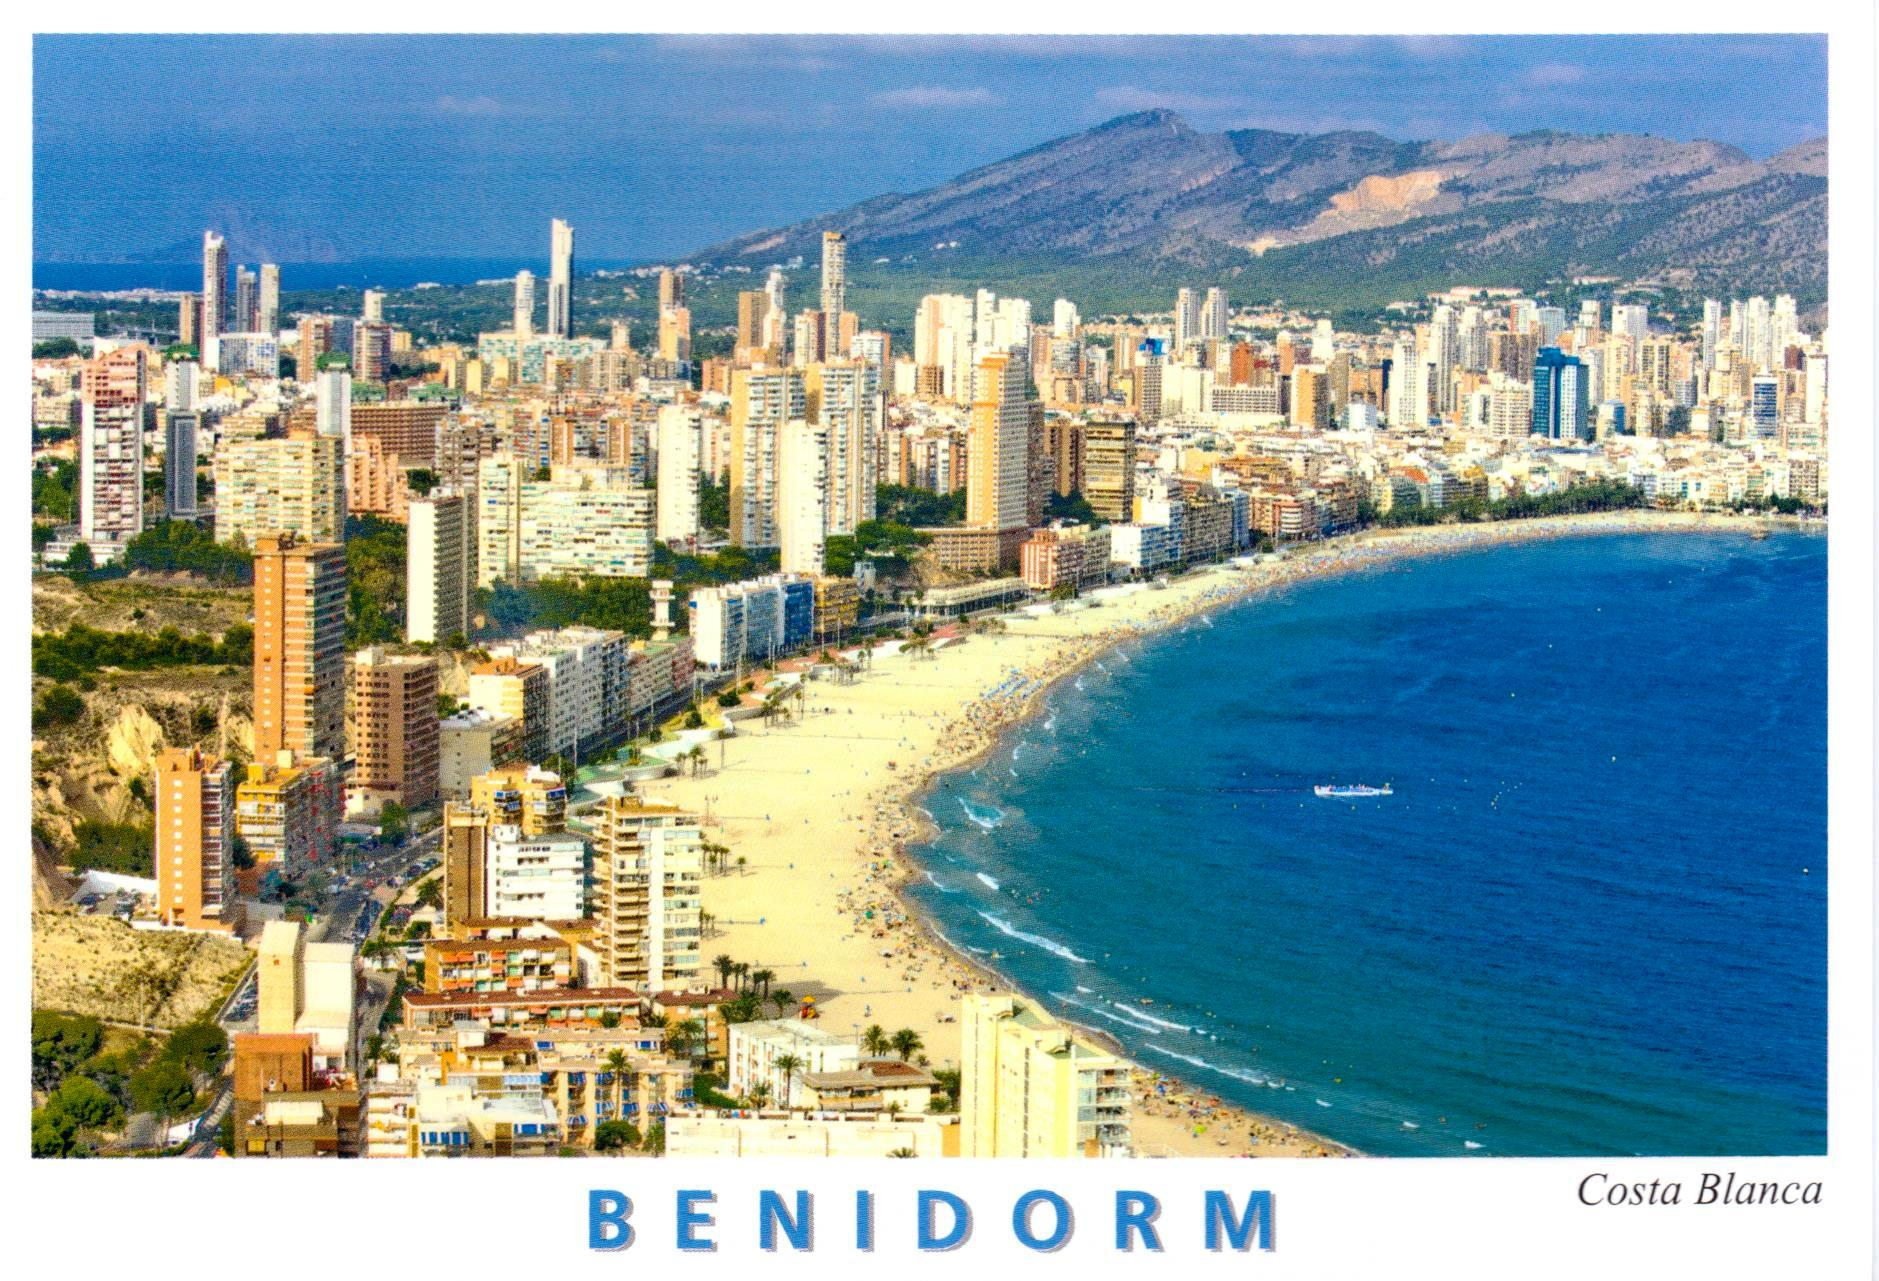 Benidorm Spain  City pictures : Benidorm | Have Bag, Will Travel | Page 2